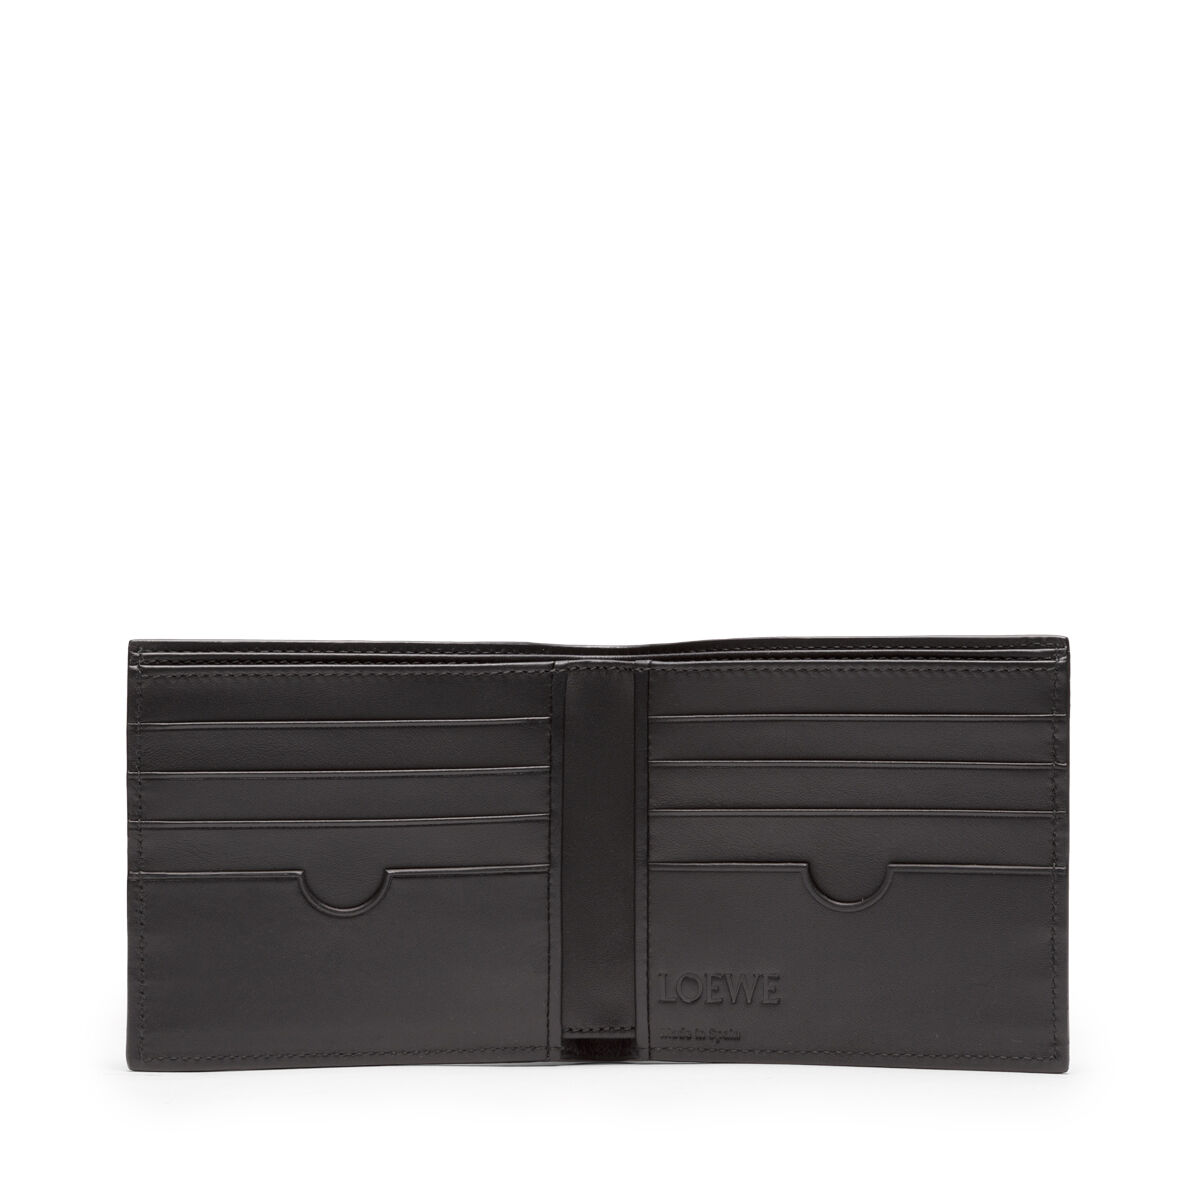 LOEWE Billetero Vetiver/Negro all